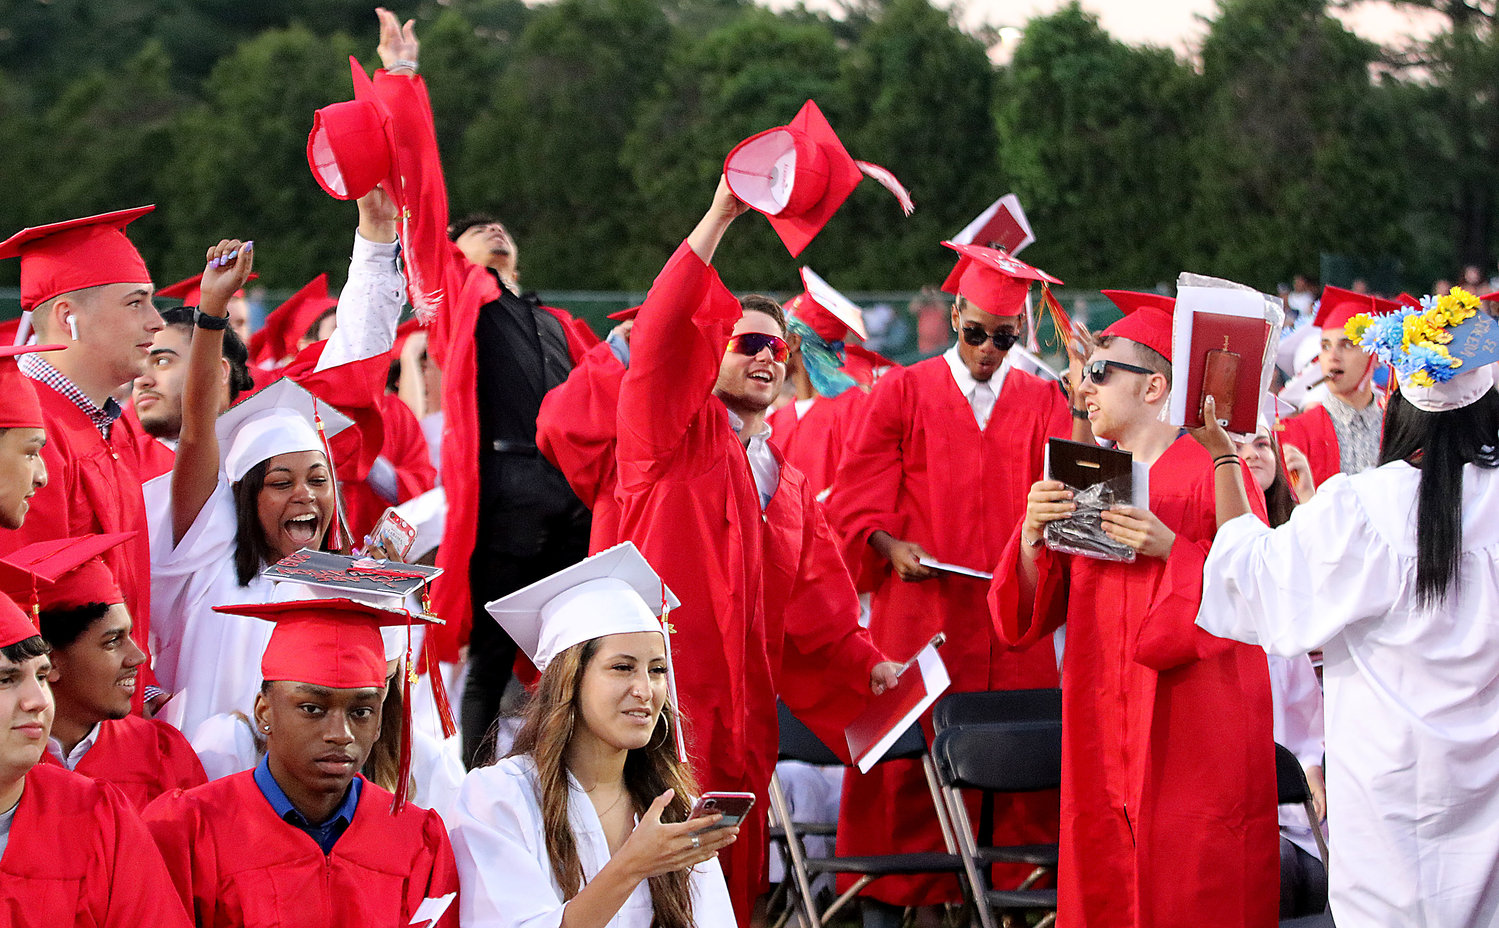 EPHS seniors celebrate after turning their tassles during the ceremony.